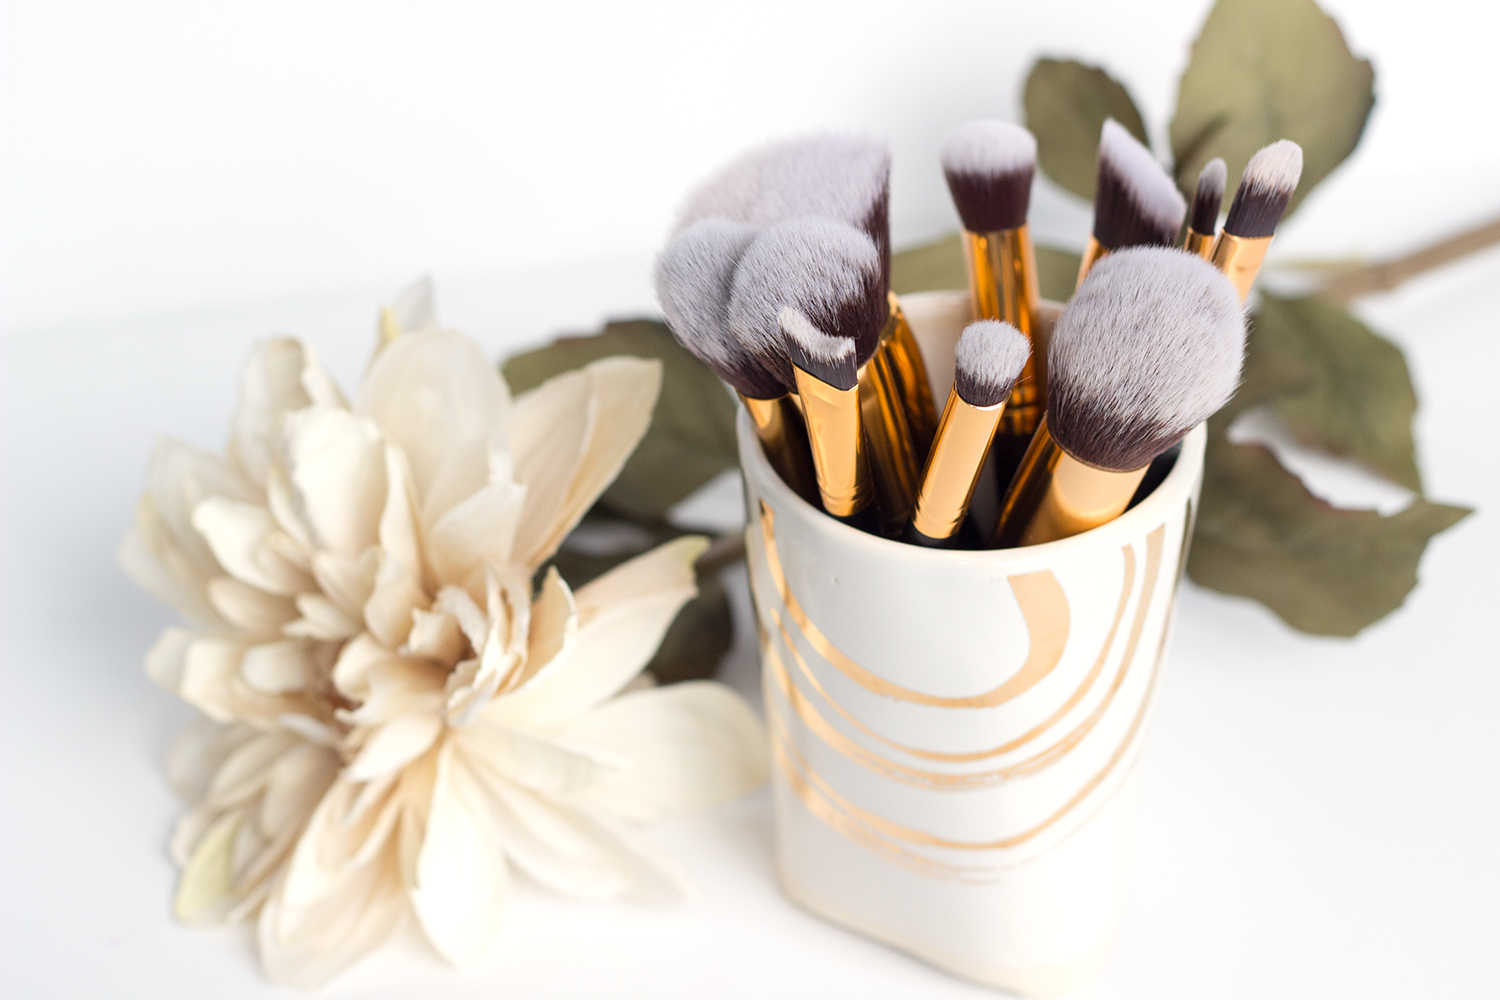 BH Cosmetics Sculpt & Blend 2 Brush Set